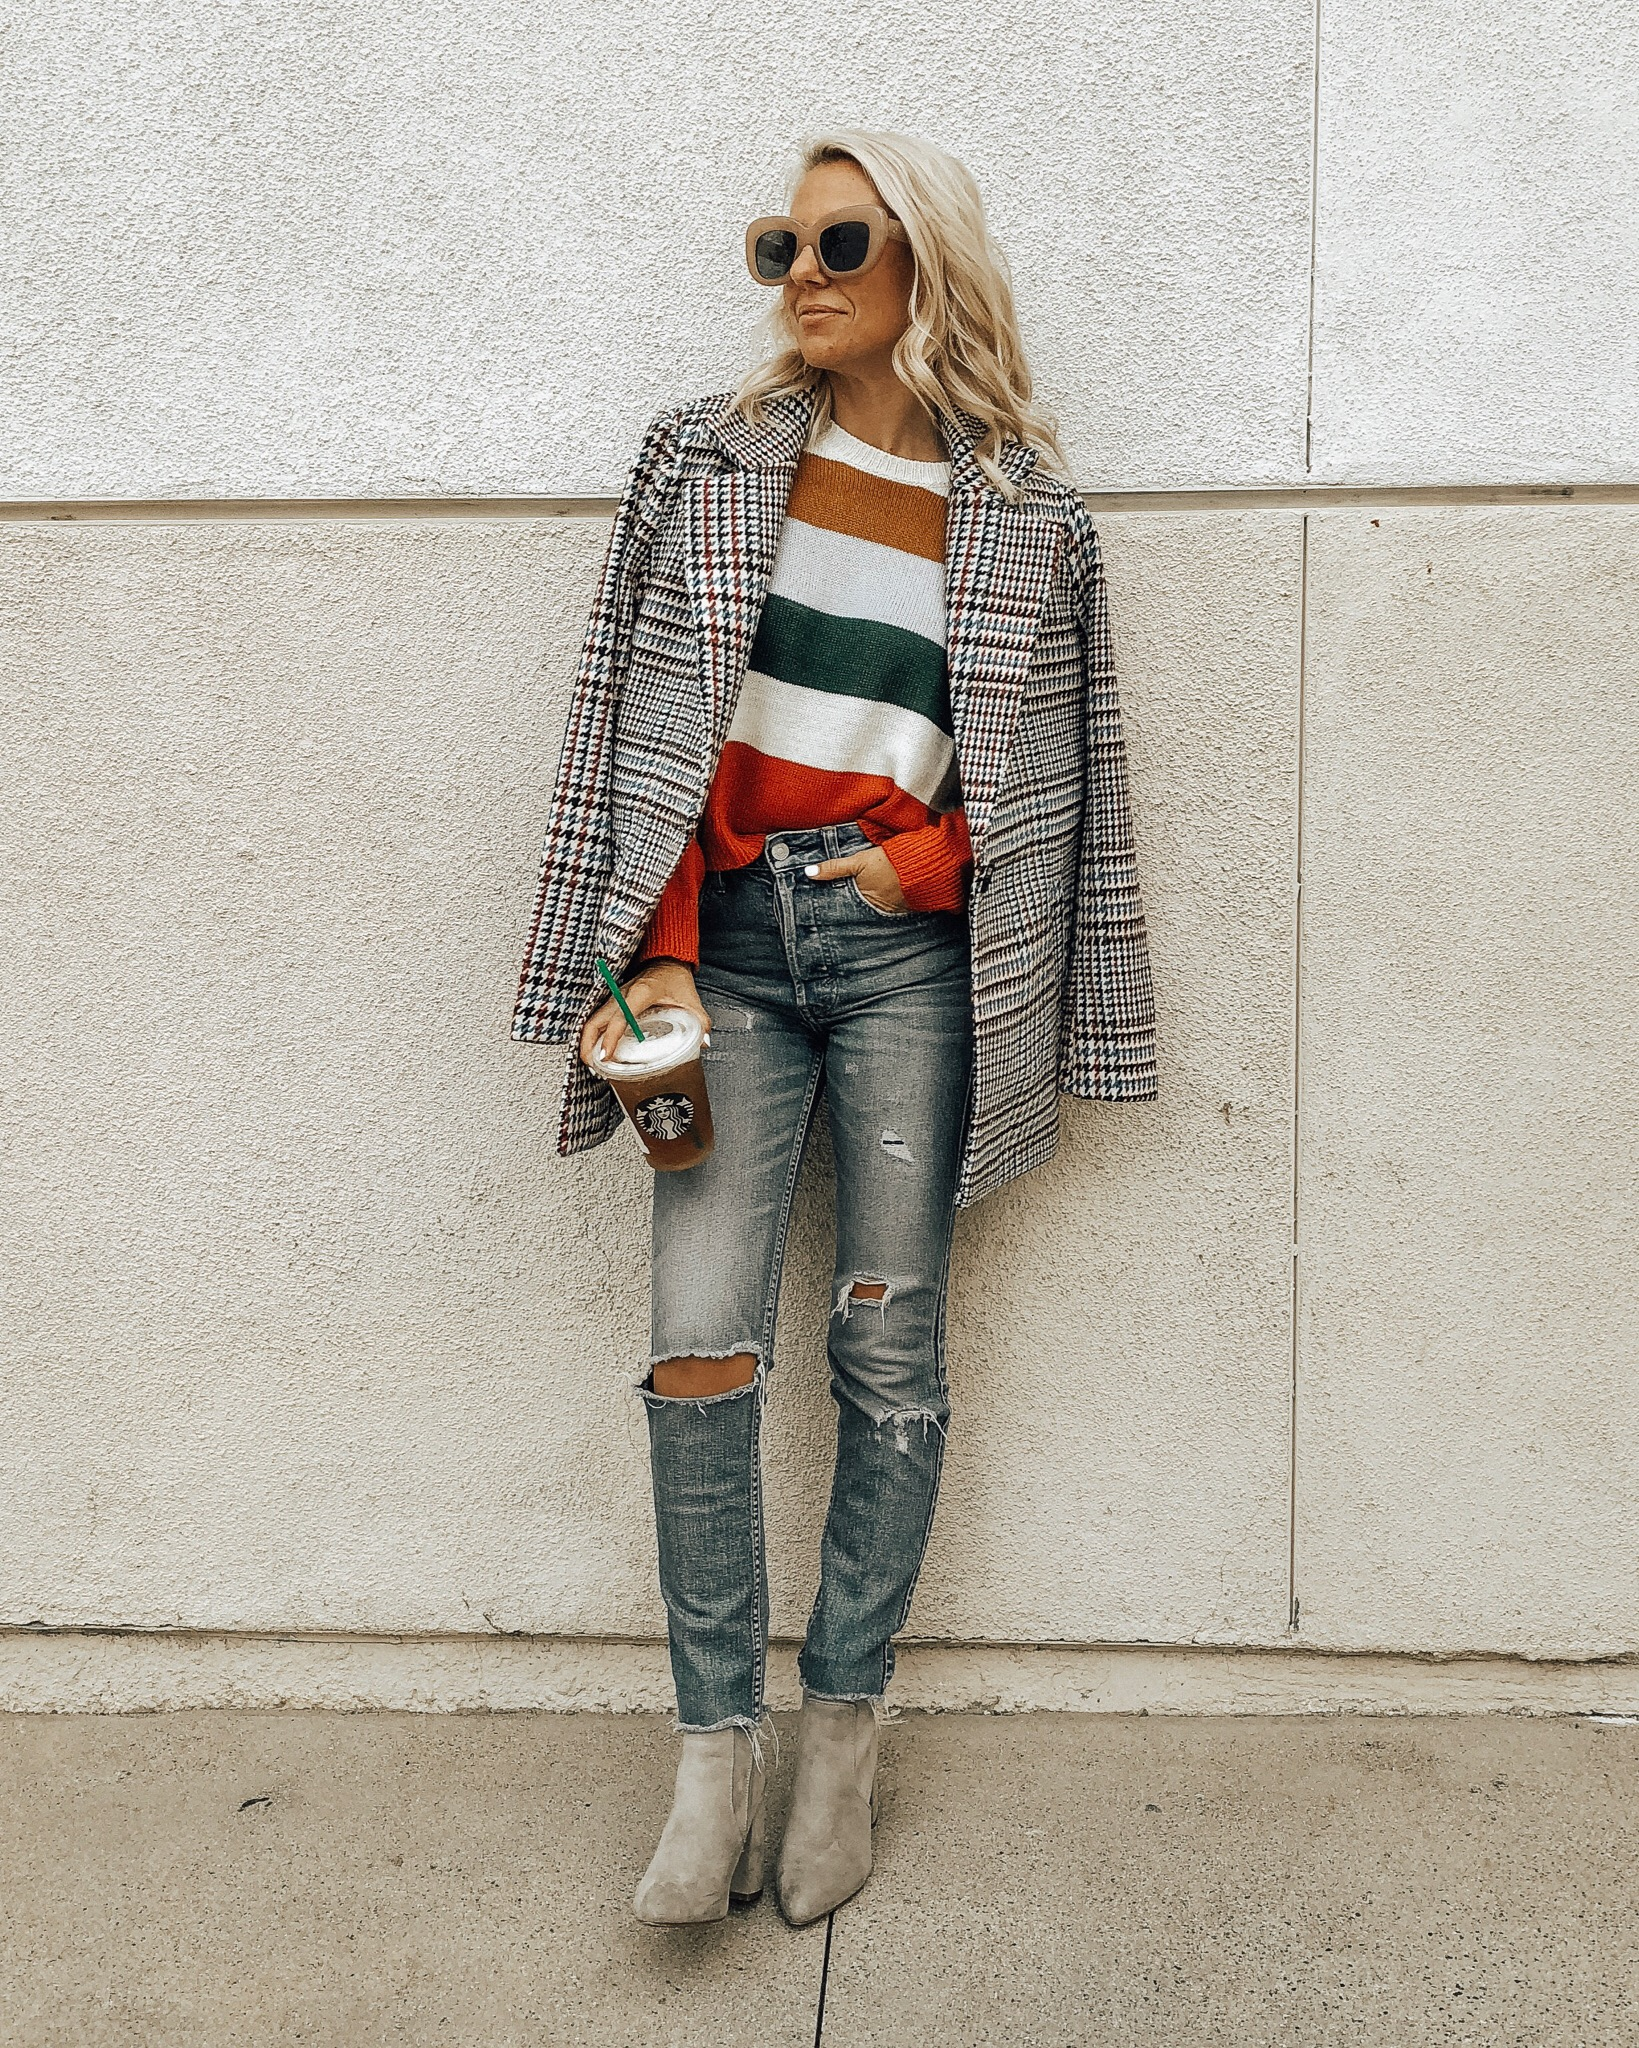 MAD FOR PLAID- Jaclyn De Leon Style + fall fashion + plaid coat + street style + style inspo + cozy striped sweater + block heel boots + winter casual style + 90's fashion + retro style + mom style + forever 21 + affordable fashion